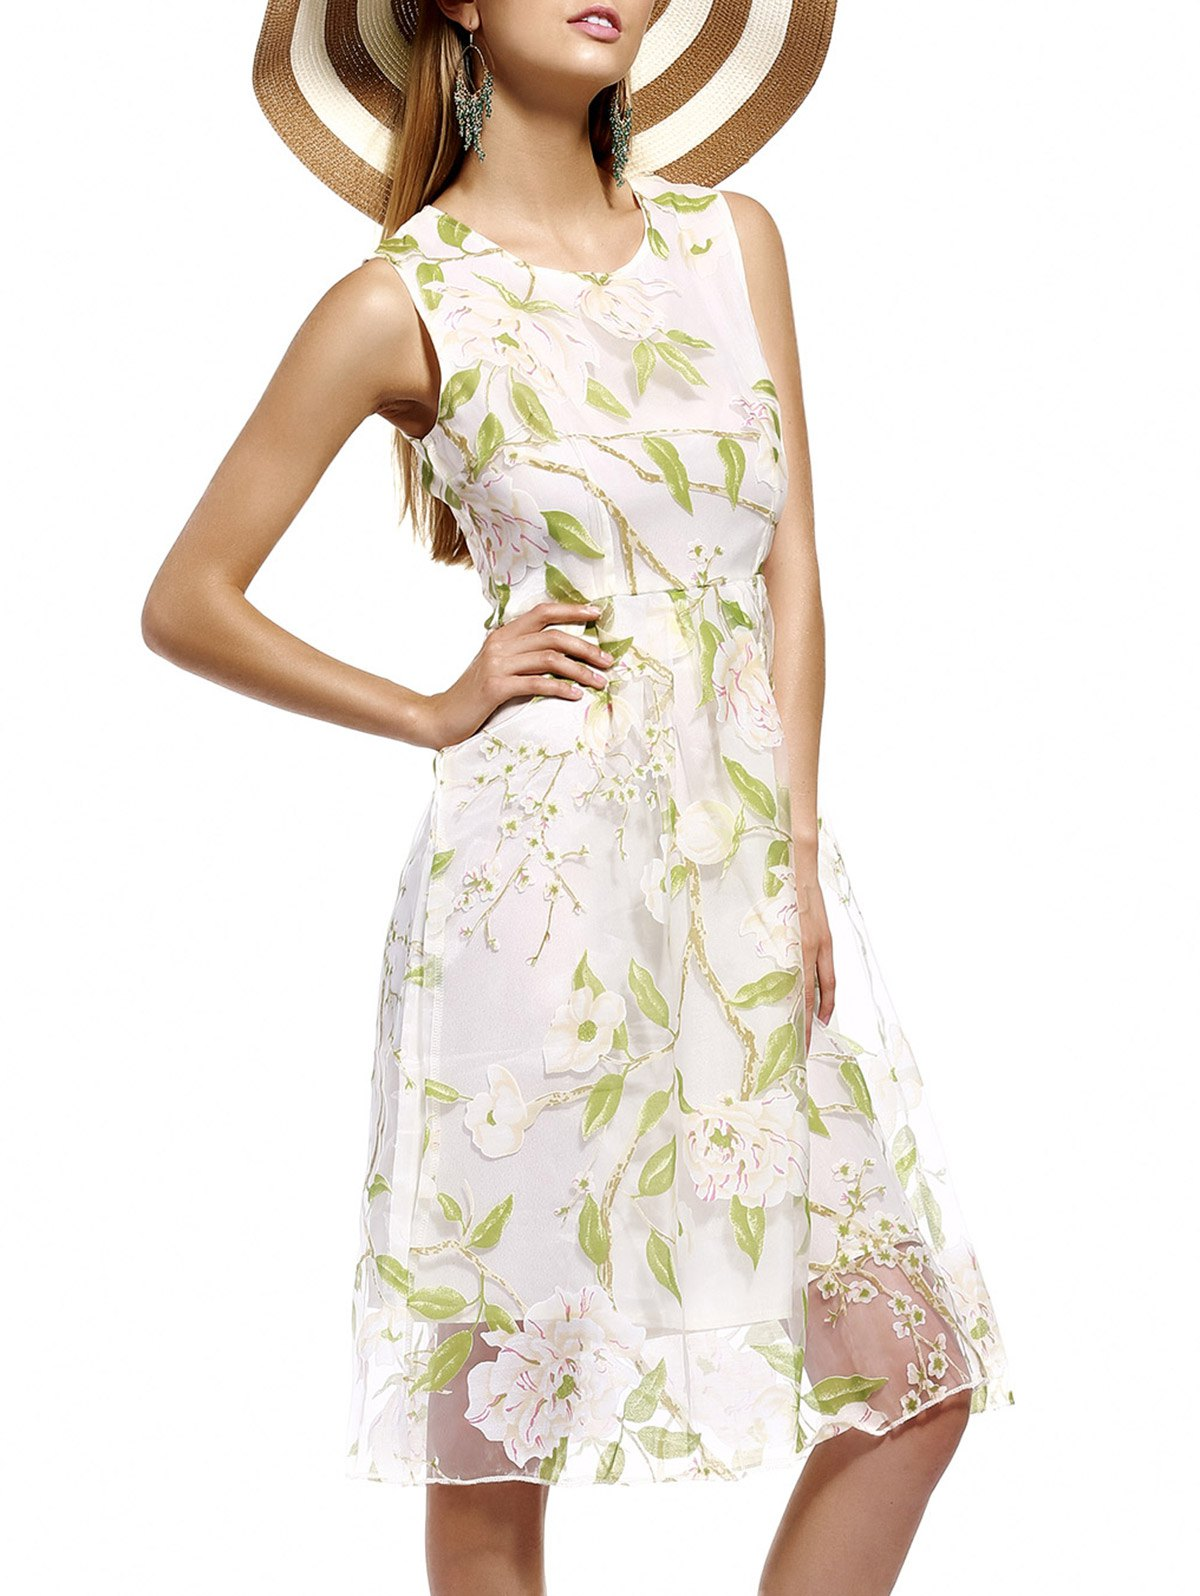 Refreshing Floral Print Tulle Overlay Women's Dress